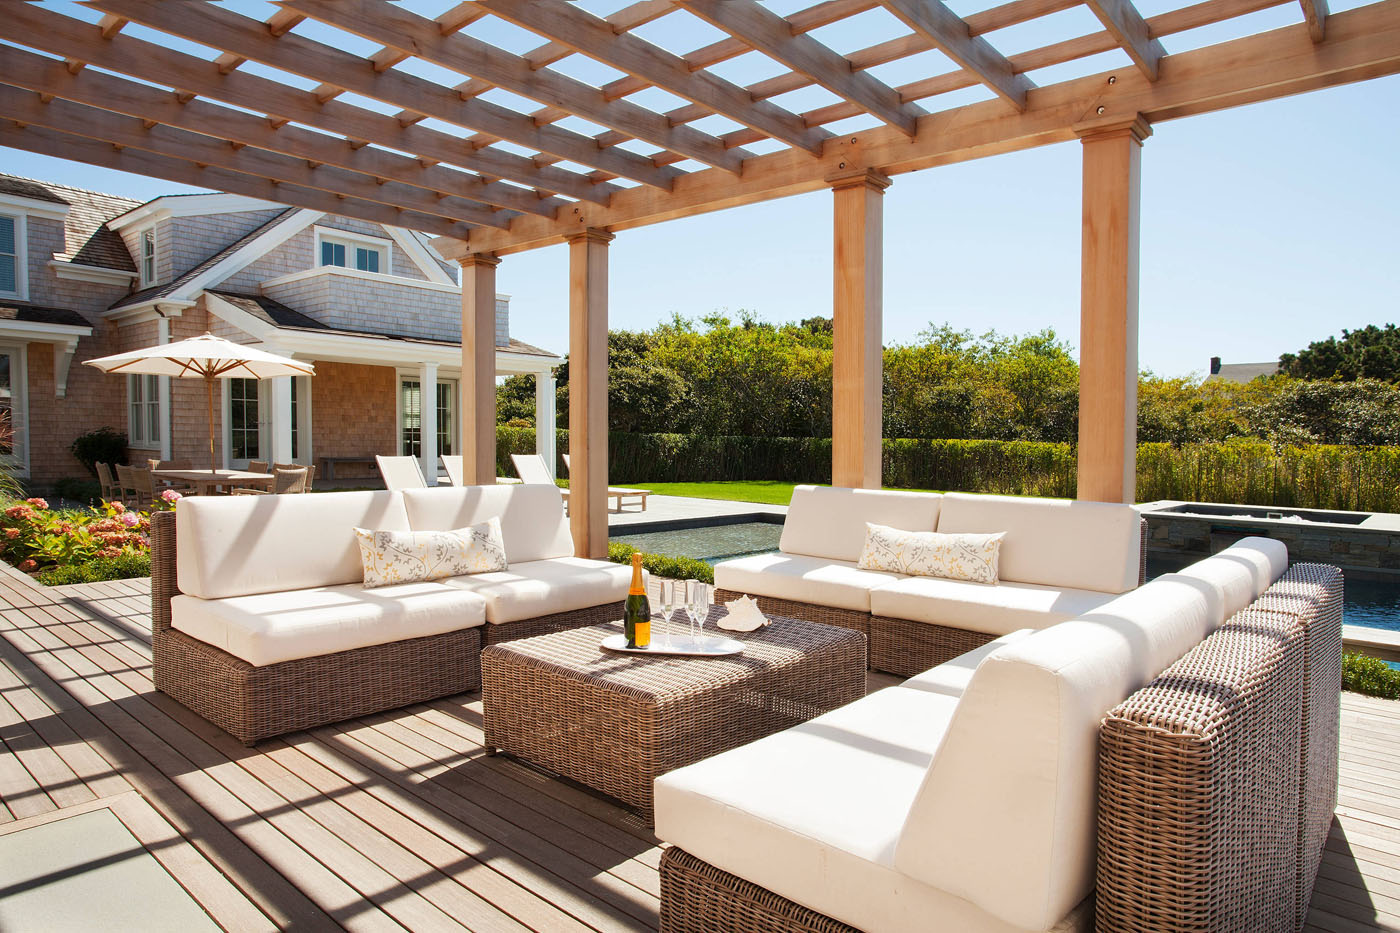 PATIO AREAS THAT INSPIRE Find Decorating Inspiration For Your Home